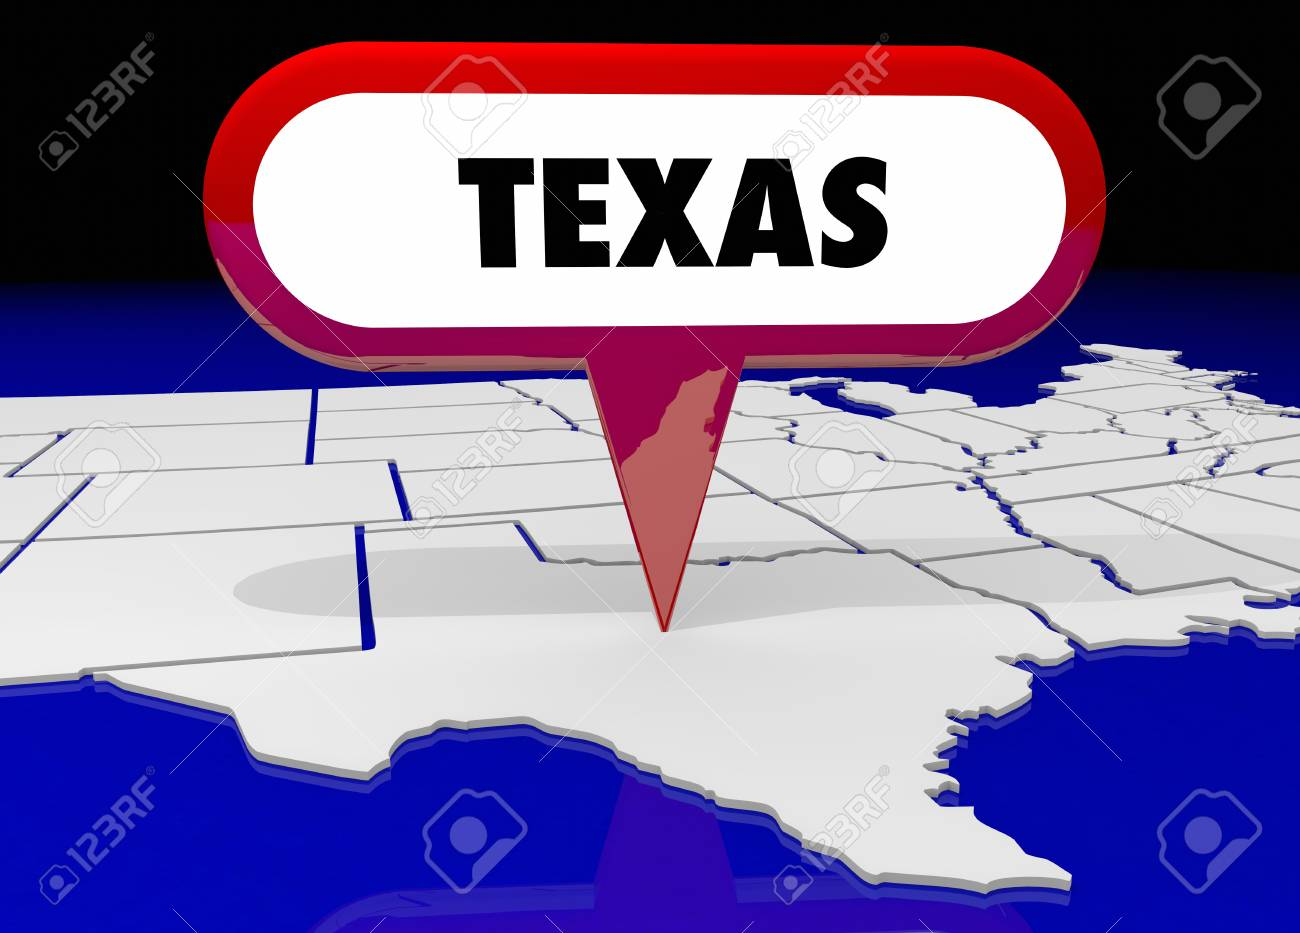 Texas Tx State Map Pin Location Destination 3d Illustration Stock